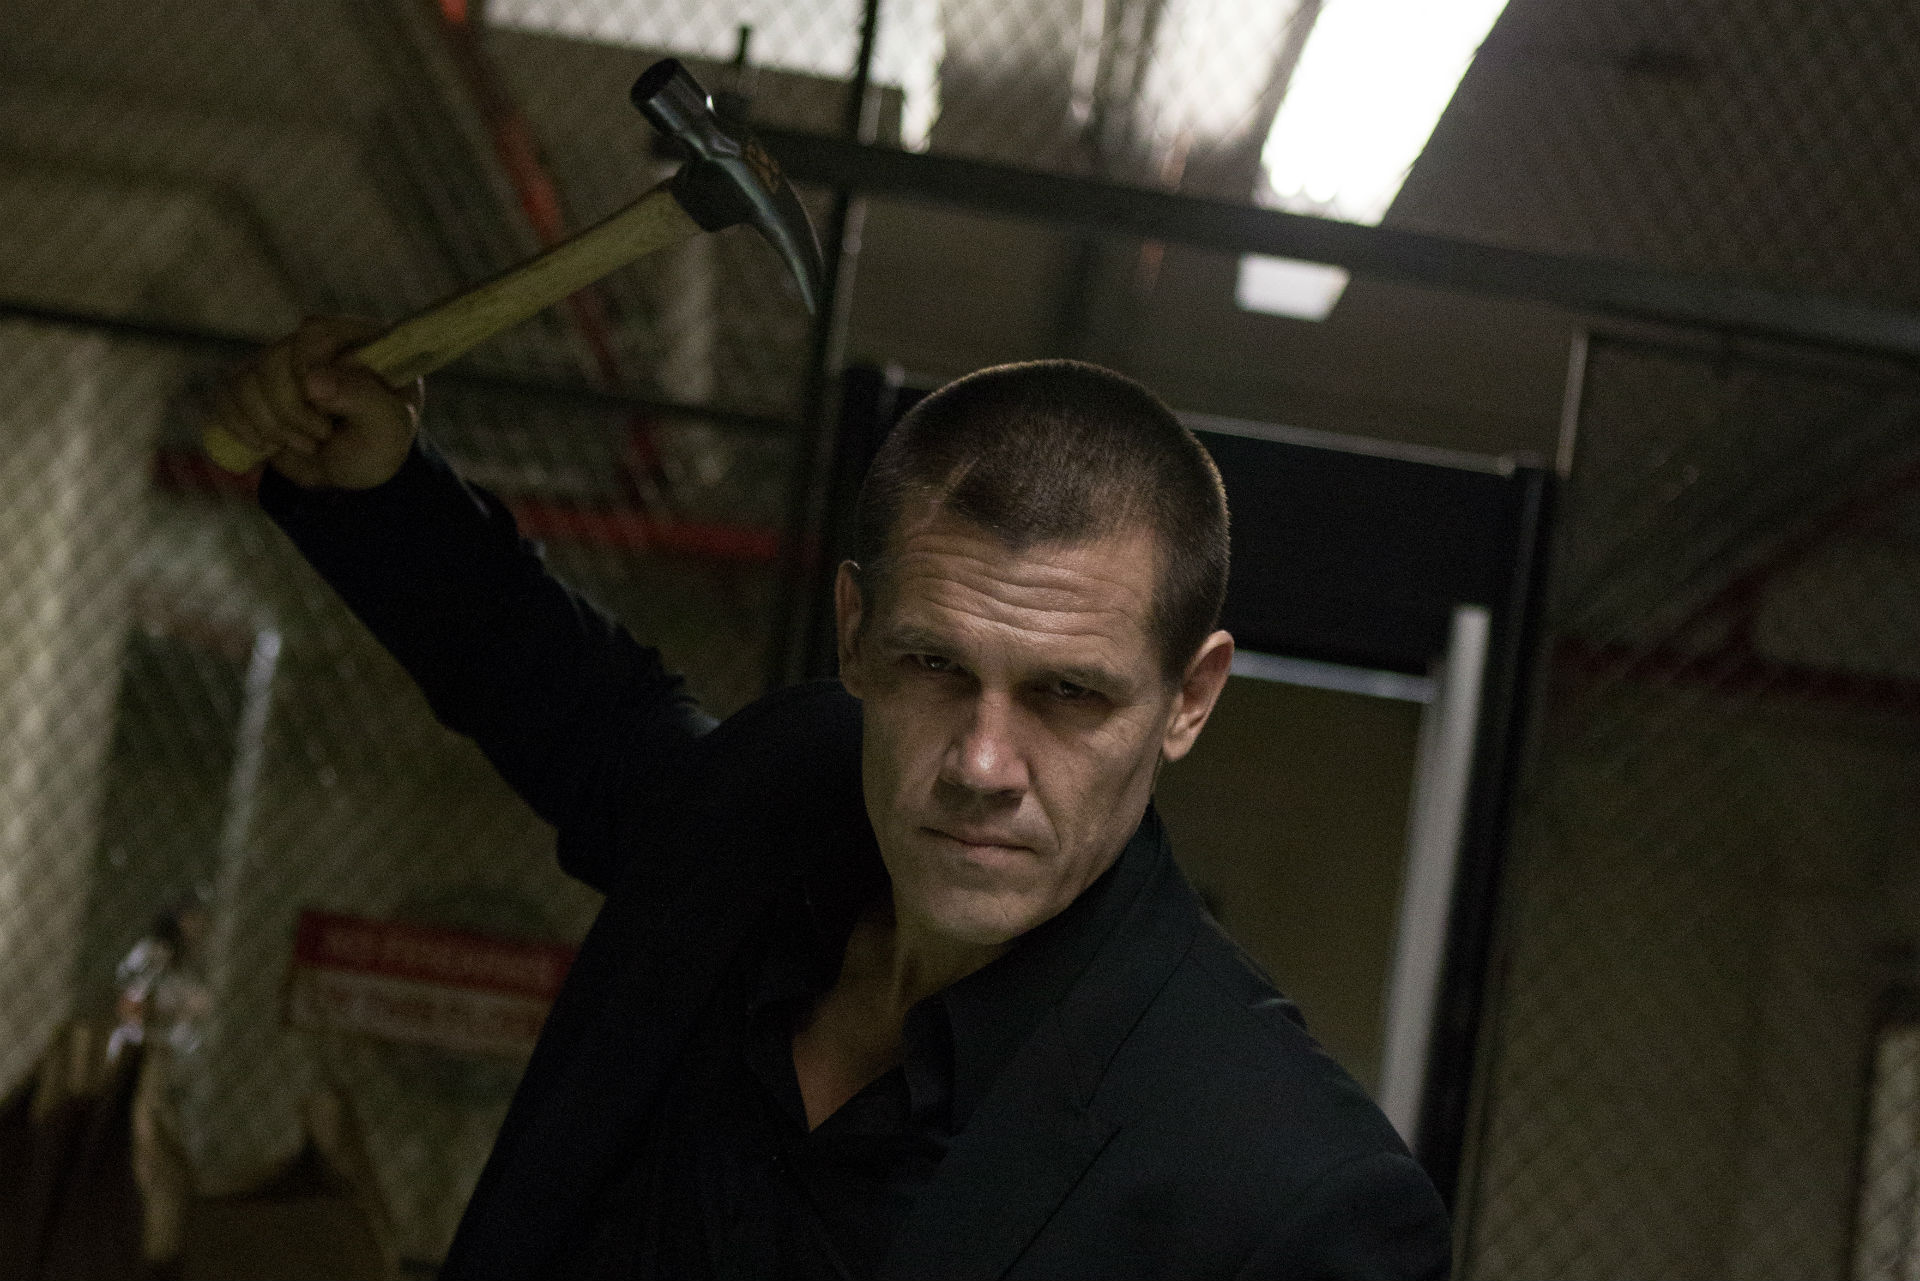 Josh Brolin freed from imprisonment and seeking revenge with a claw hammer in Oldboy (2013)